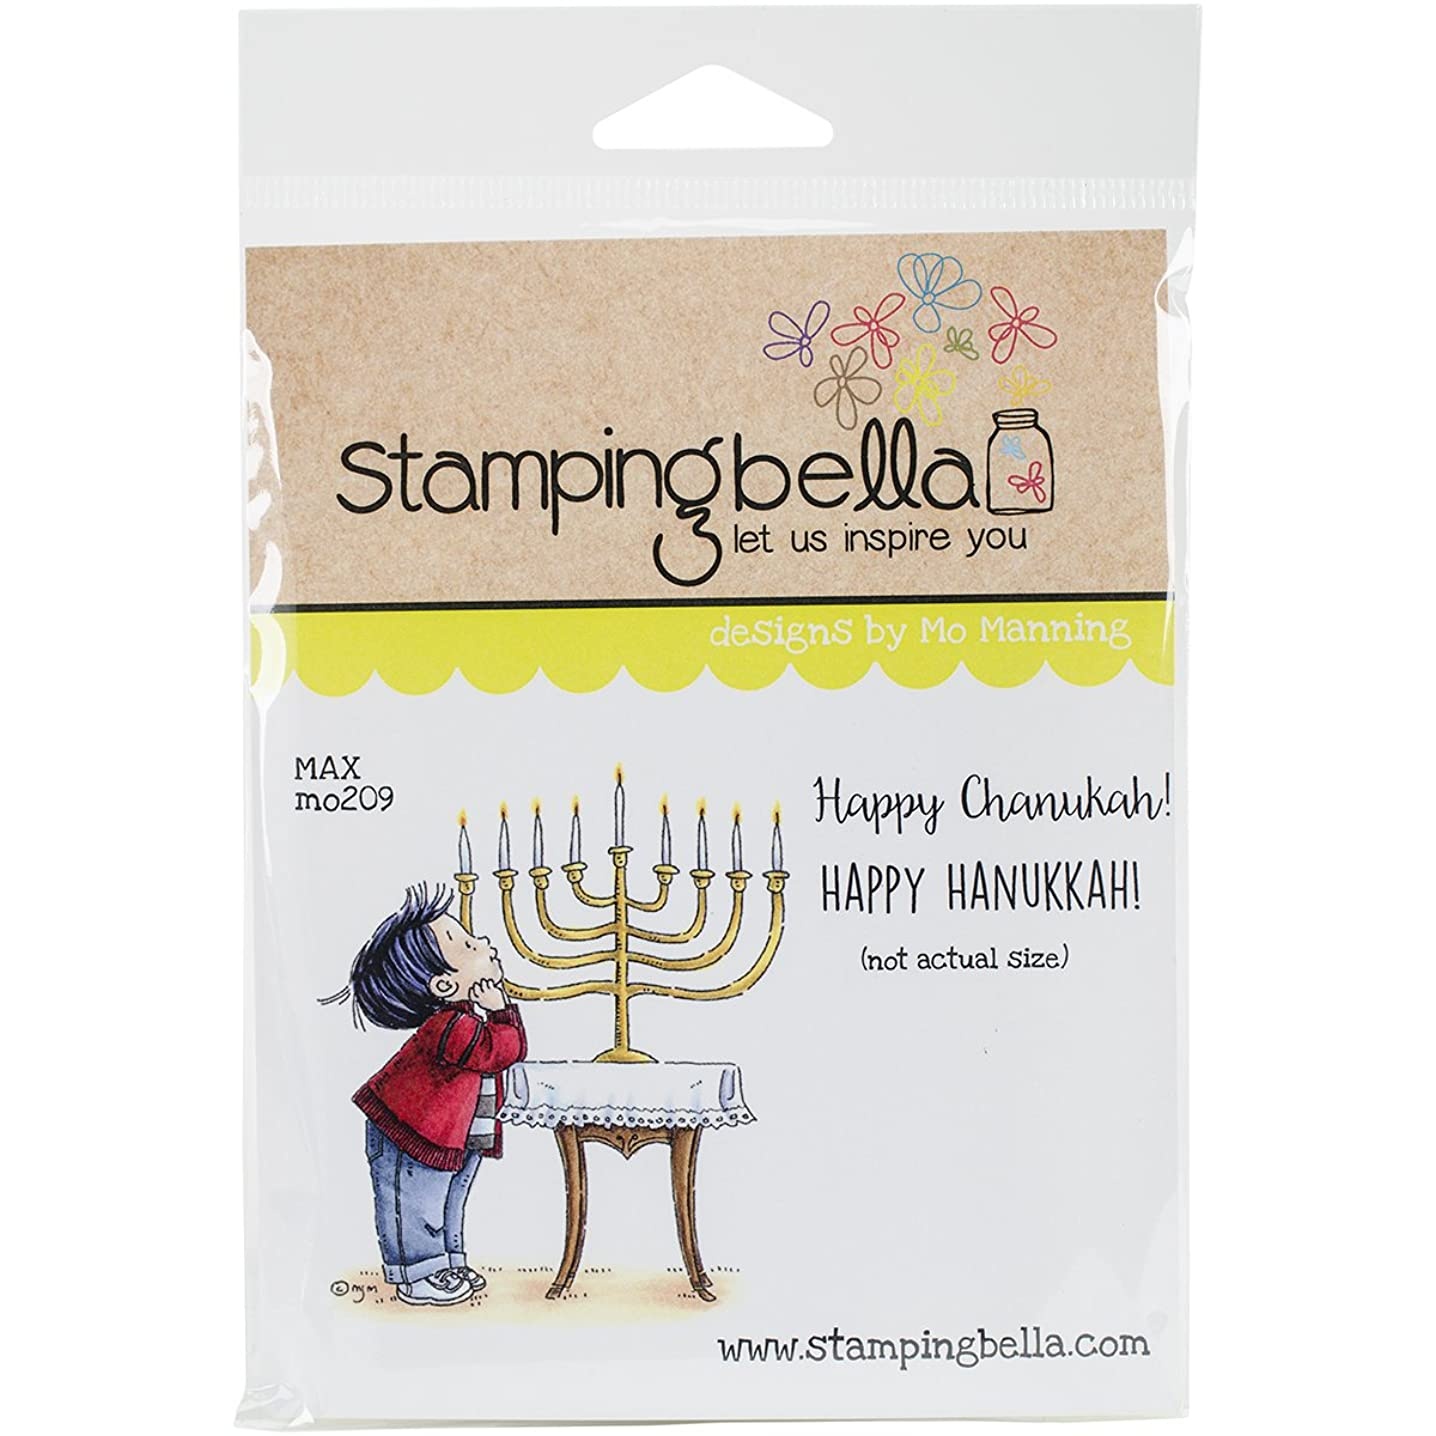 Stamping Bella MO209 Cling Stamp 6.5 x 4.5 in. - Max